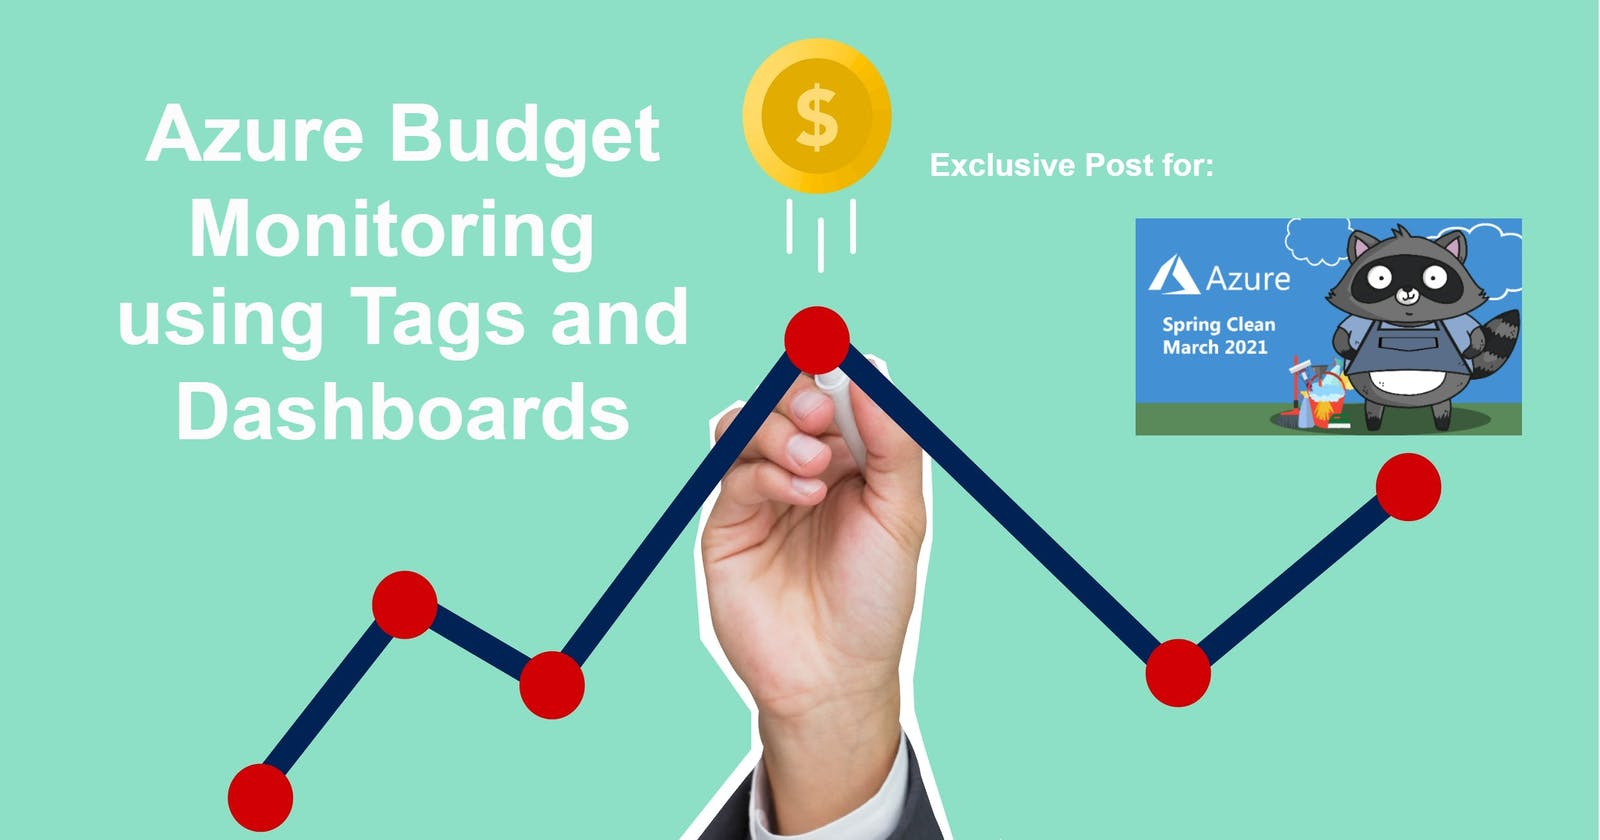 Azure Budget Monitoring using Tags and Dashboards